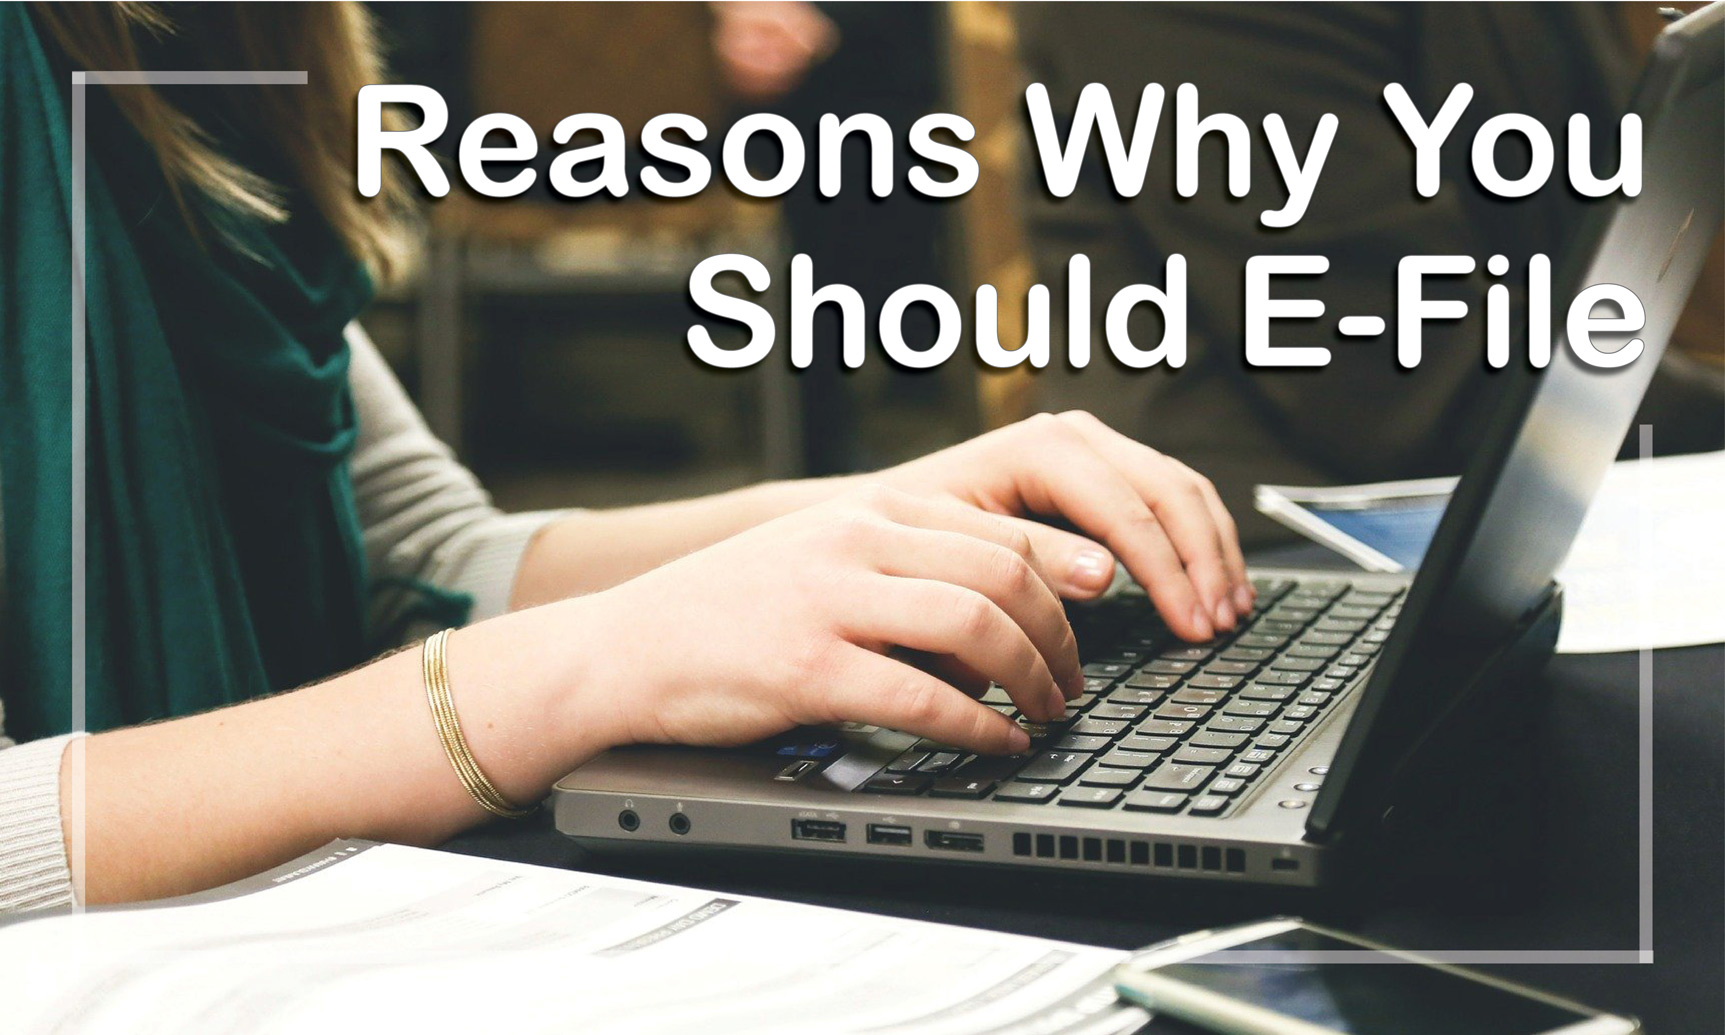 Reasons Why You Should E-File